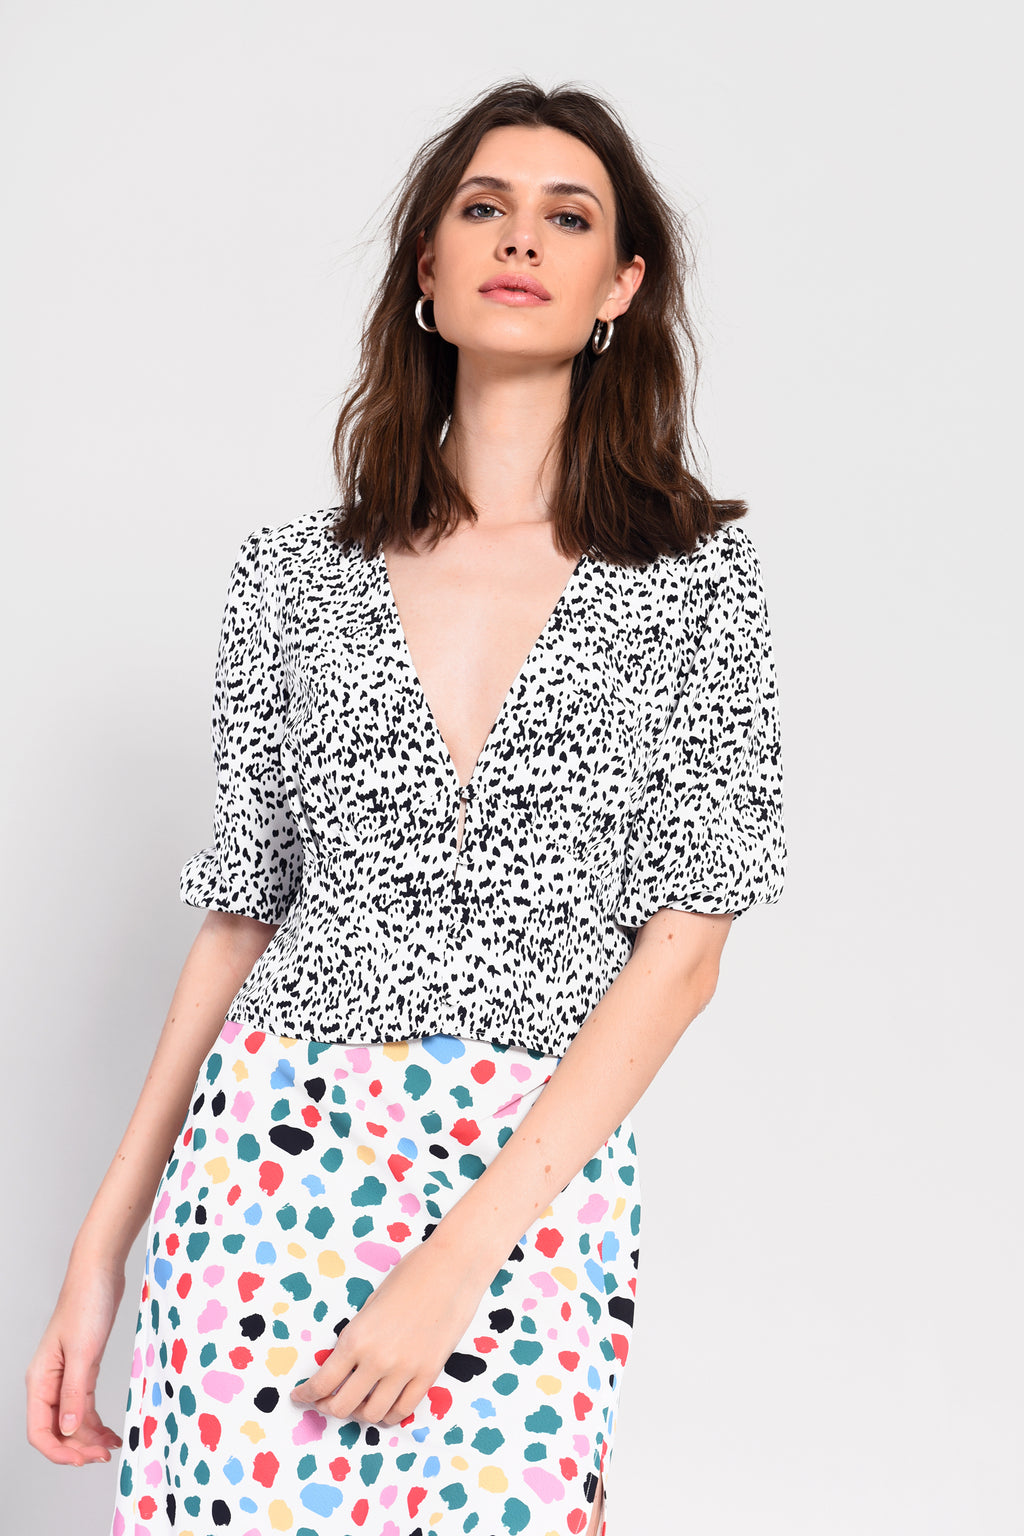 Glamorous mini dalmatian print top with short sleeves, v-neck featuring button down front.